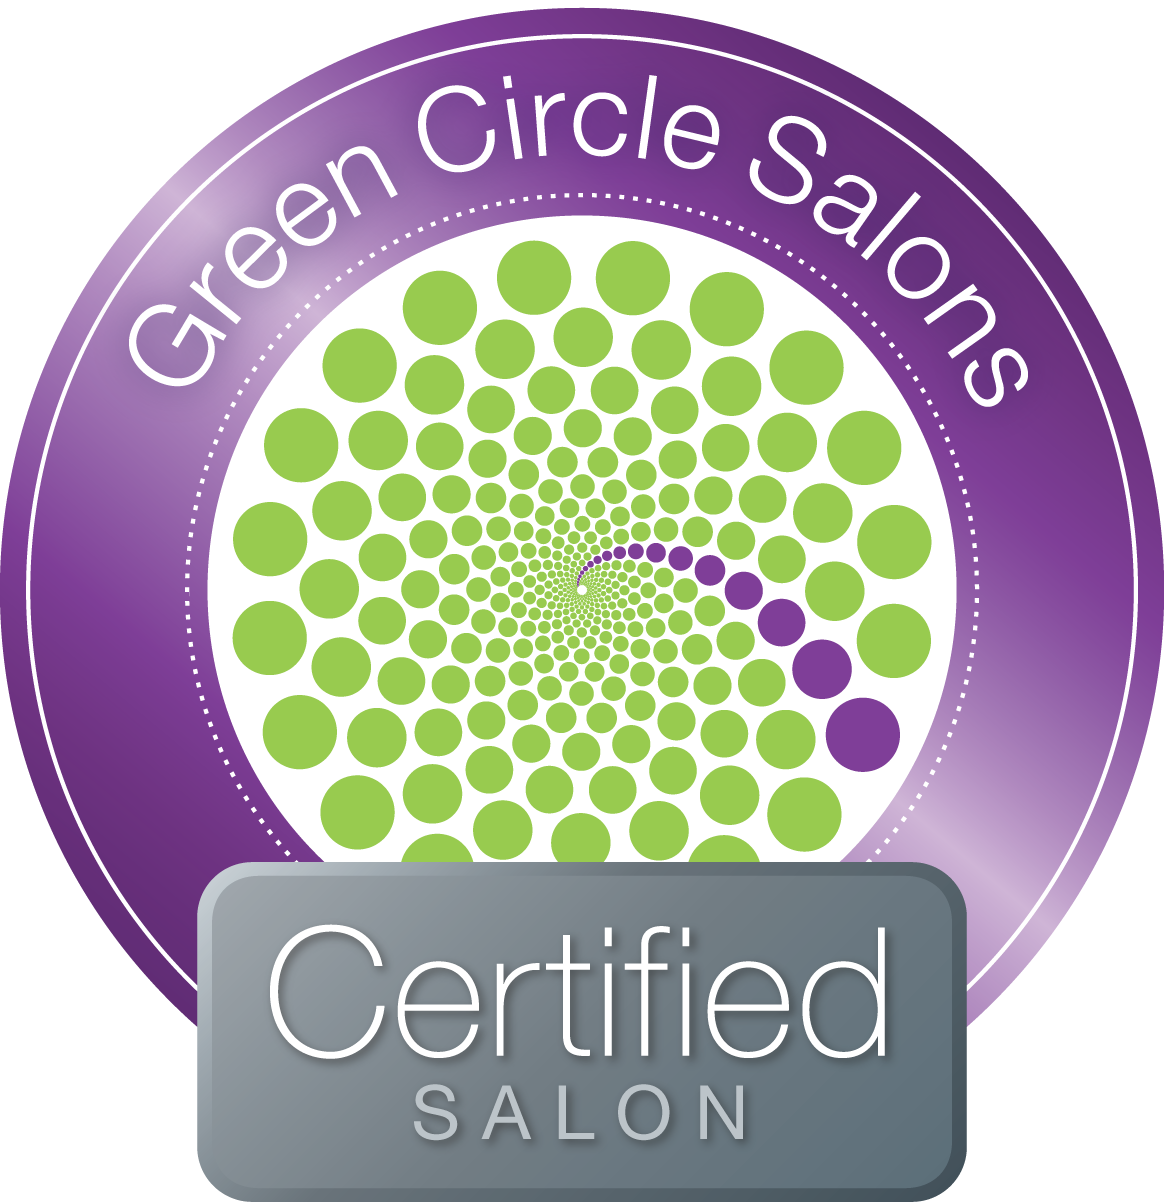 green circle salons logo